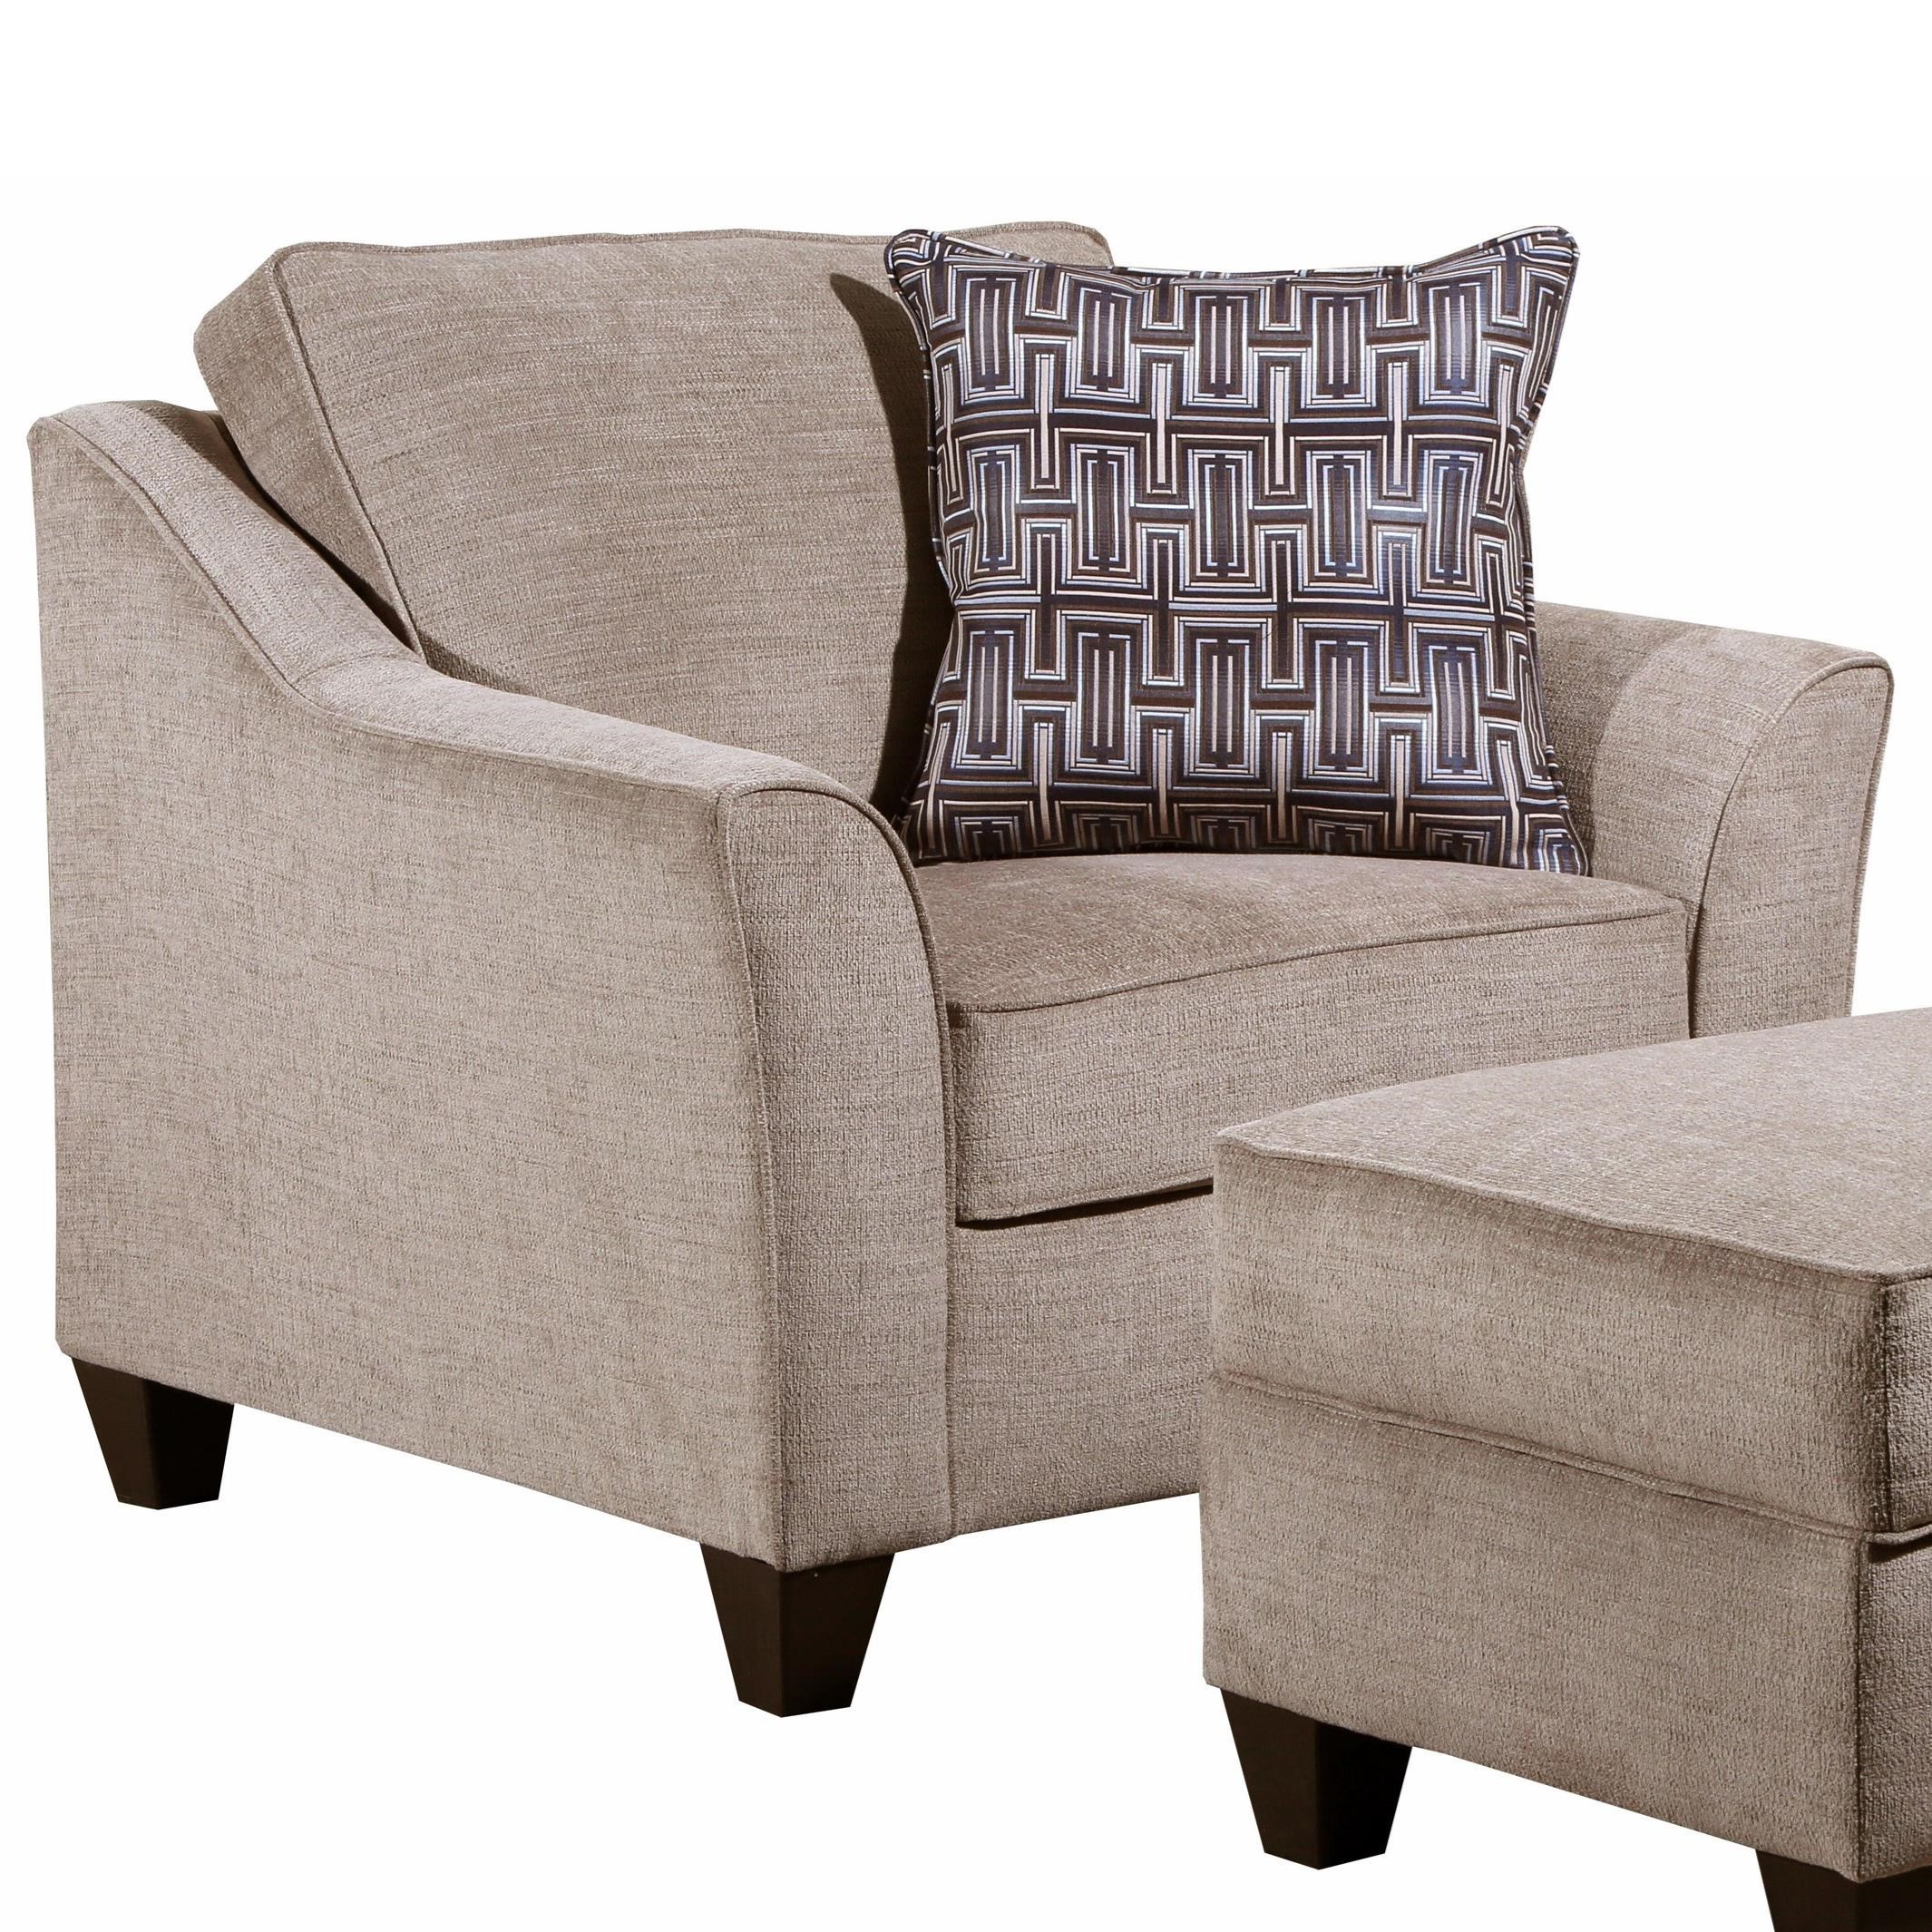 4330 Chair by United Furniture Industries at Pilgrim Furniture City